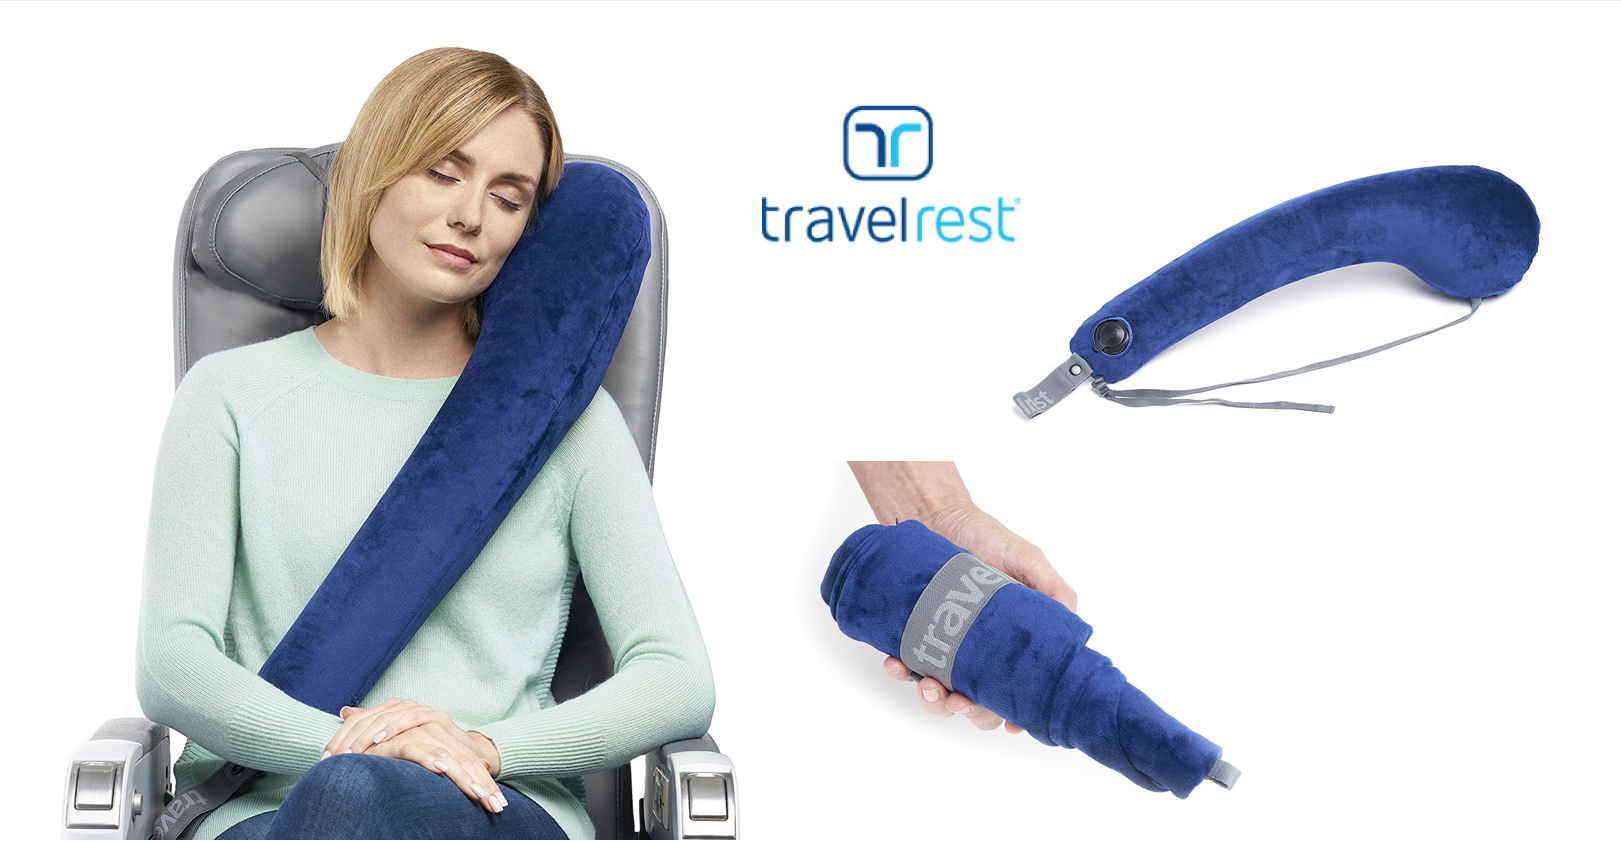 Travel Rest - Best Travel Pillows On The Market